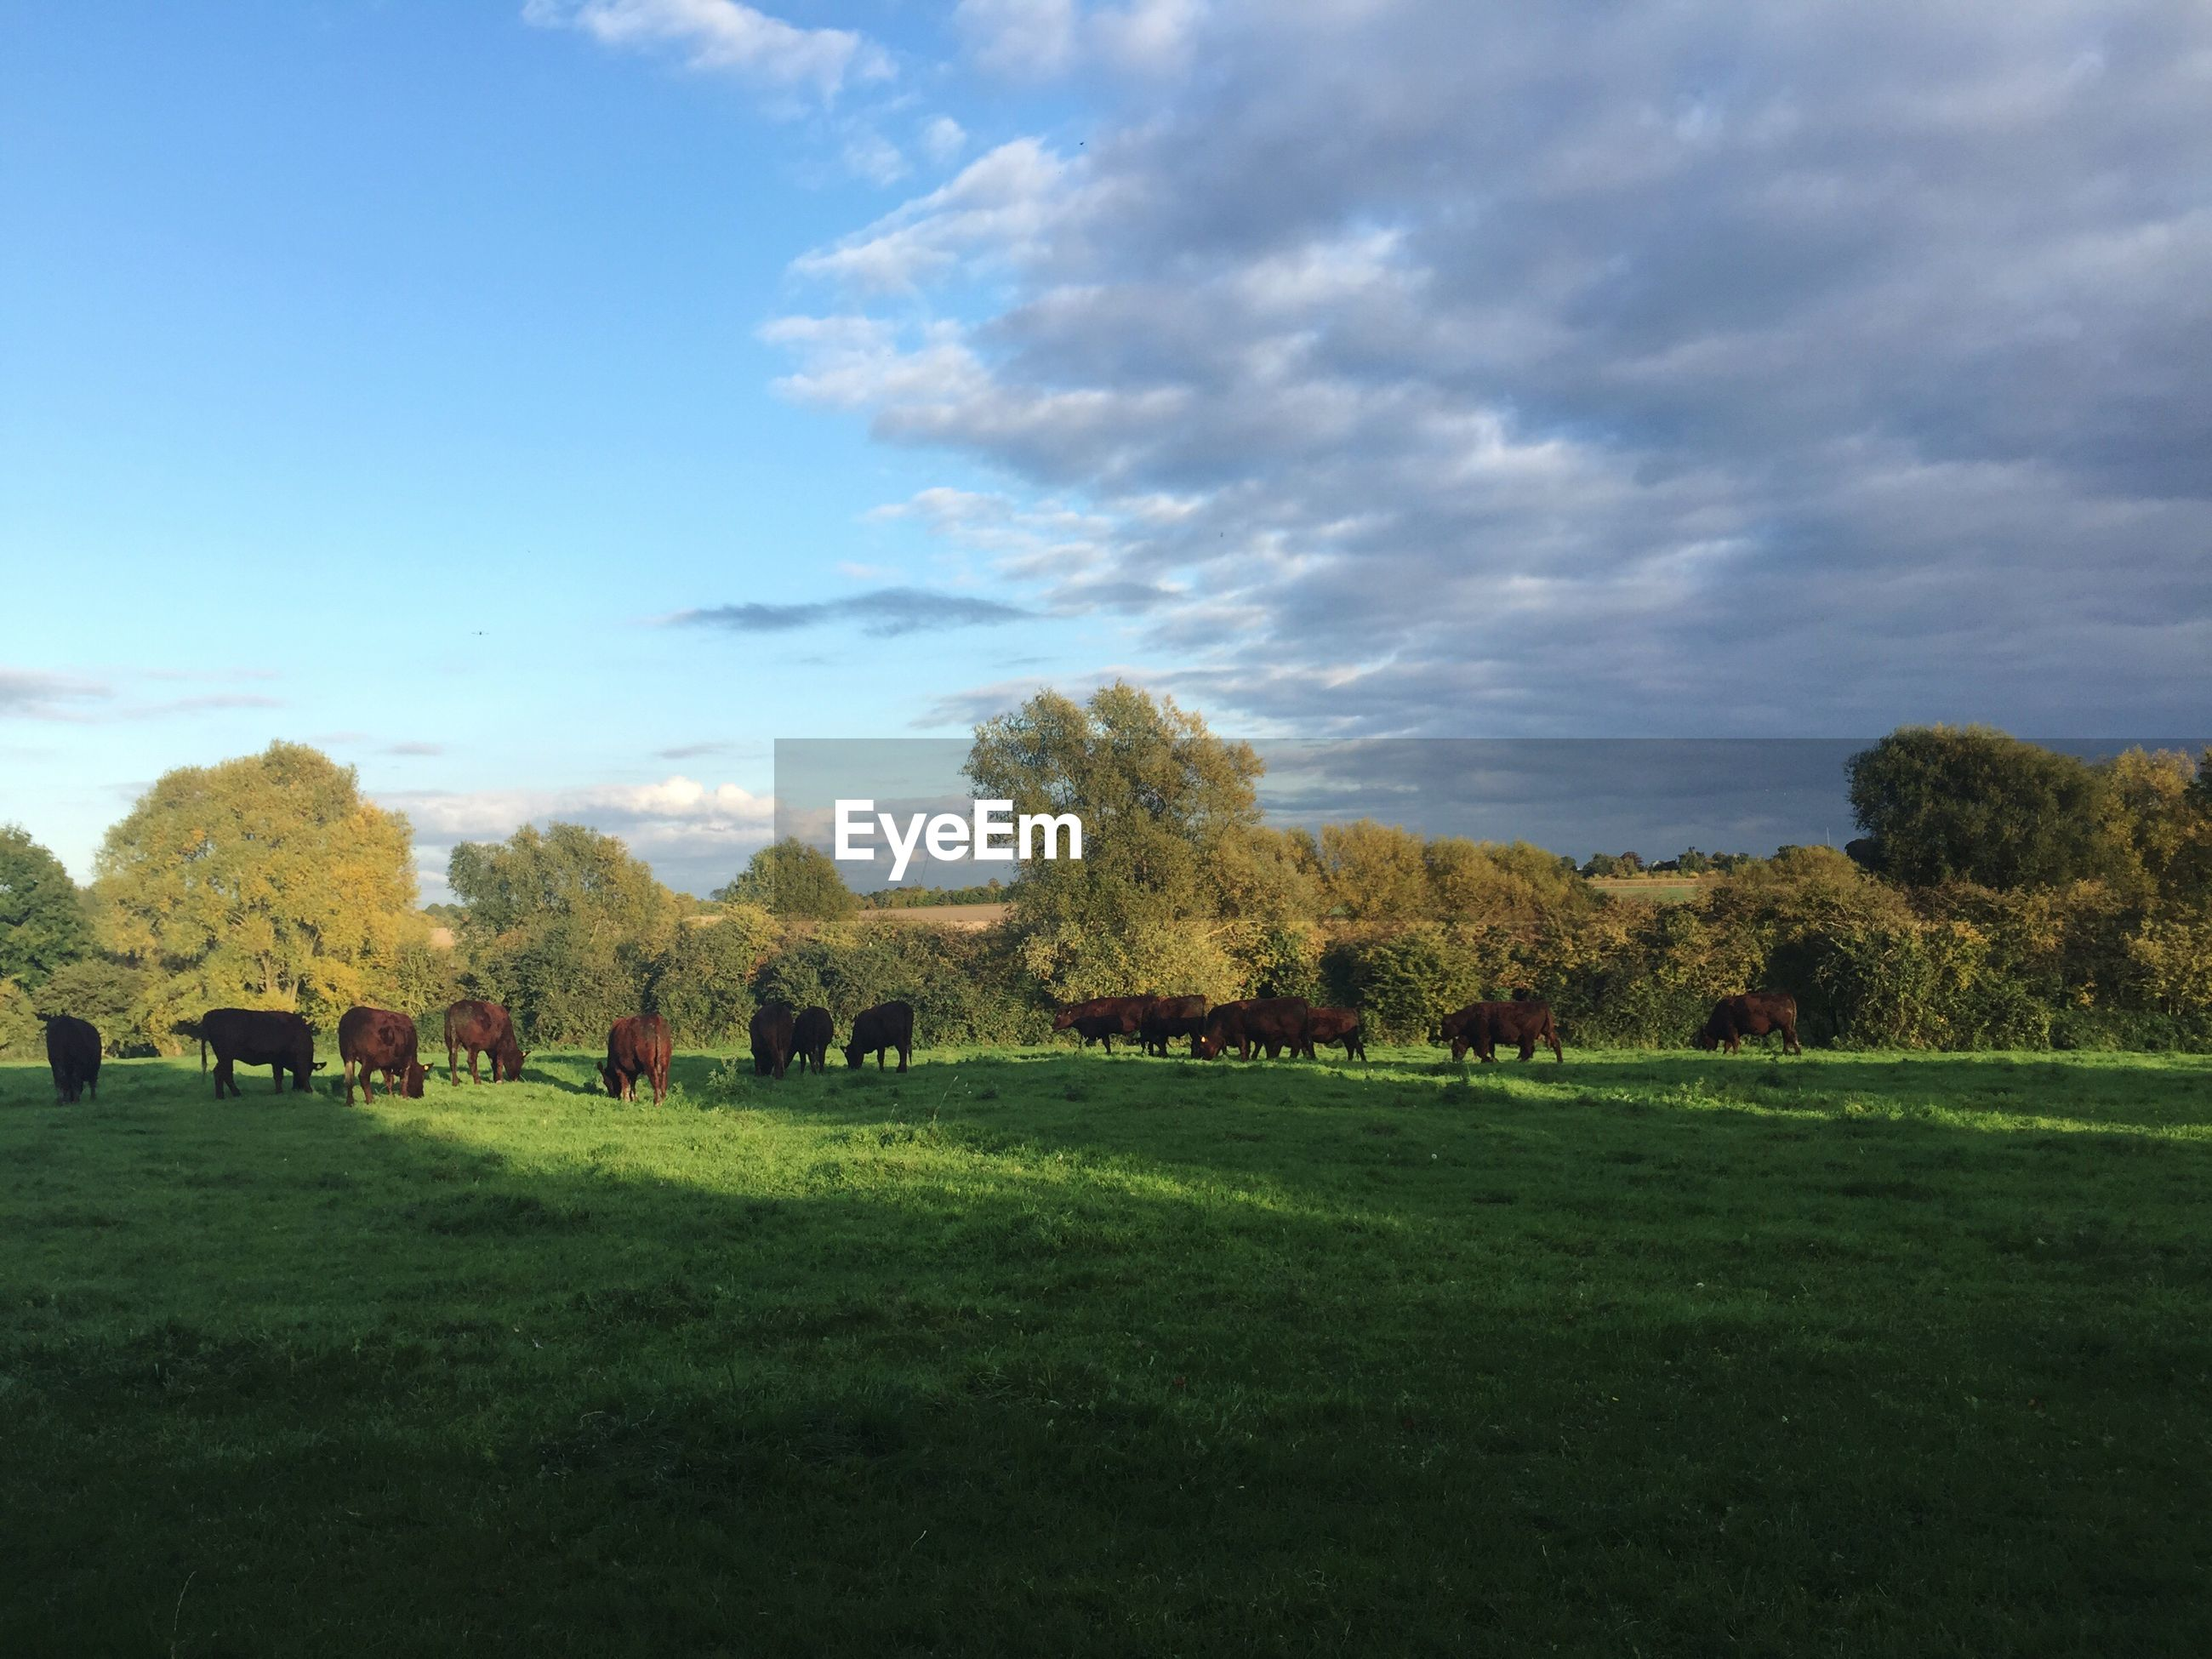 Herd of cows grazing on grassy field against sky